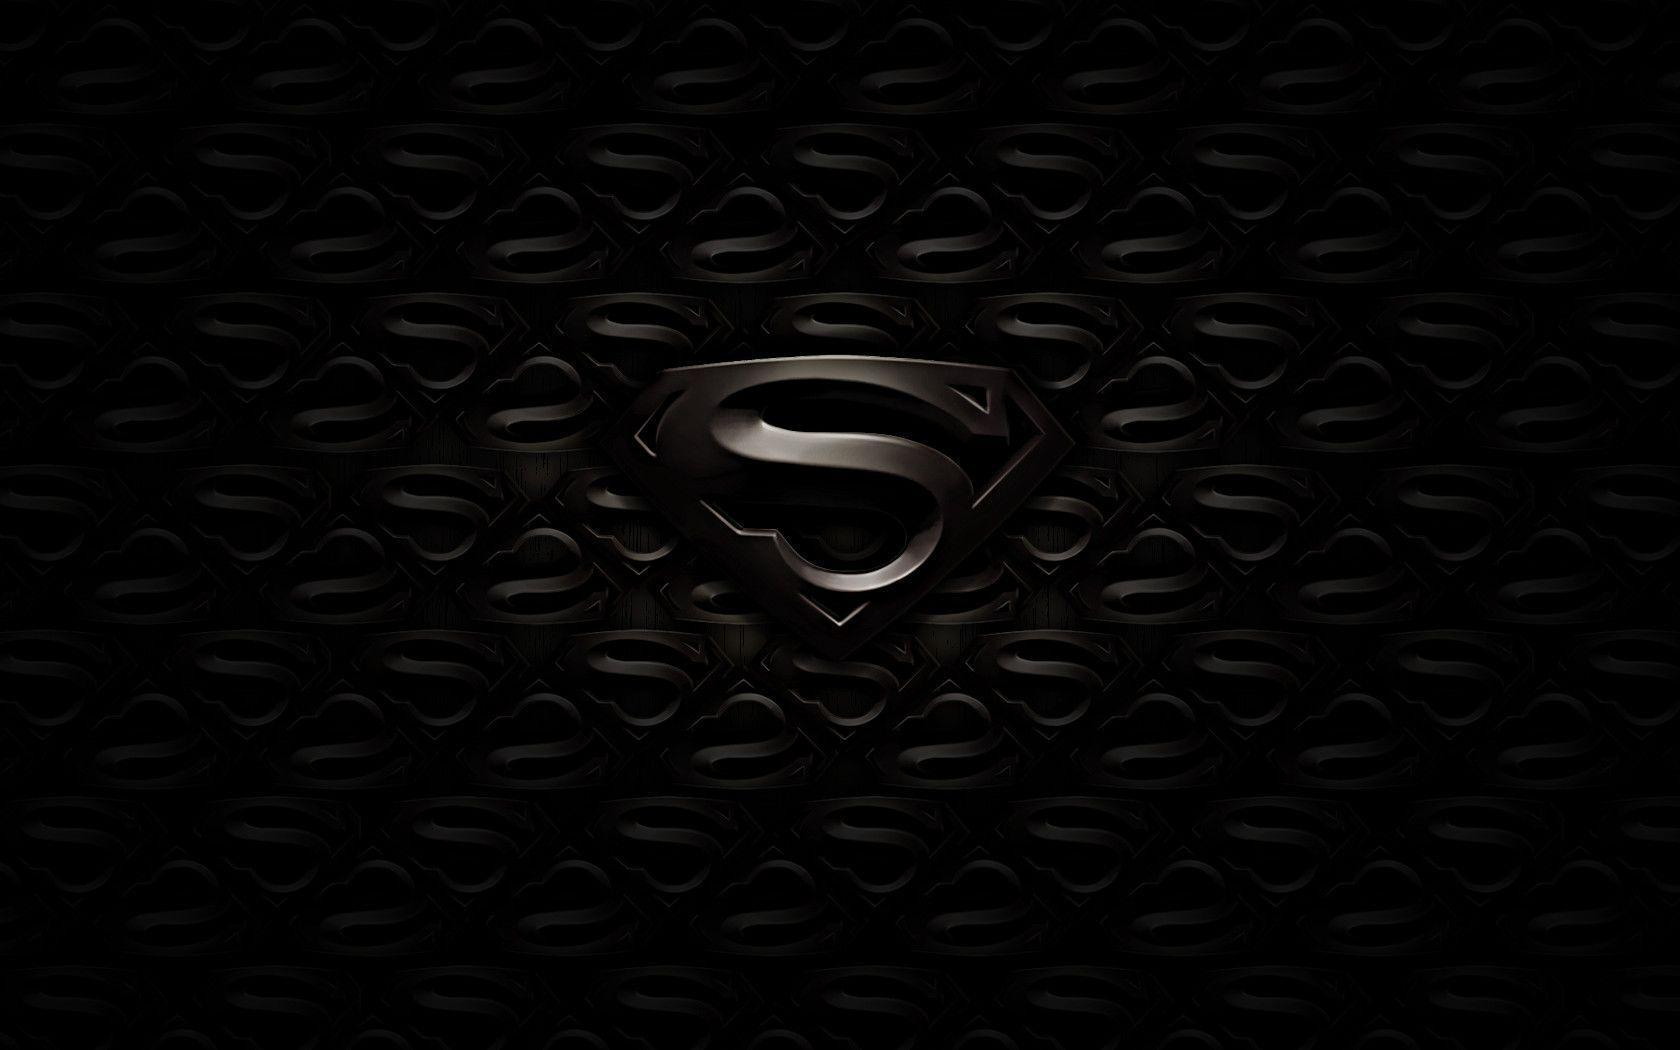 Superman Badge Image 53145 Wallpaper - Res: 1680x1050 - badge ...